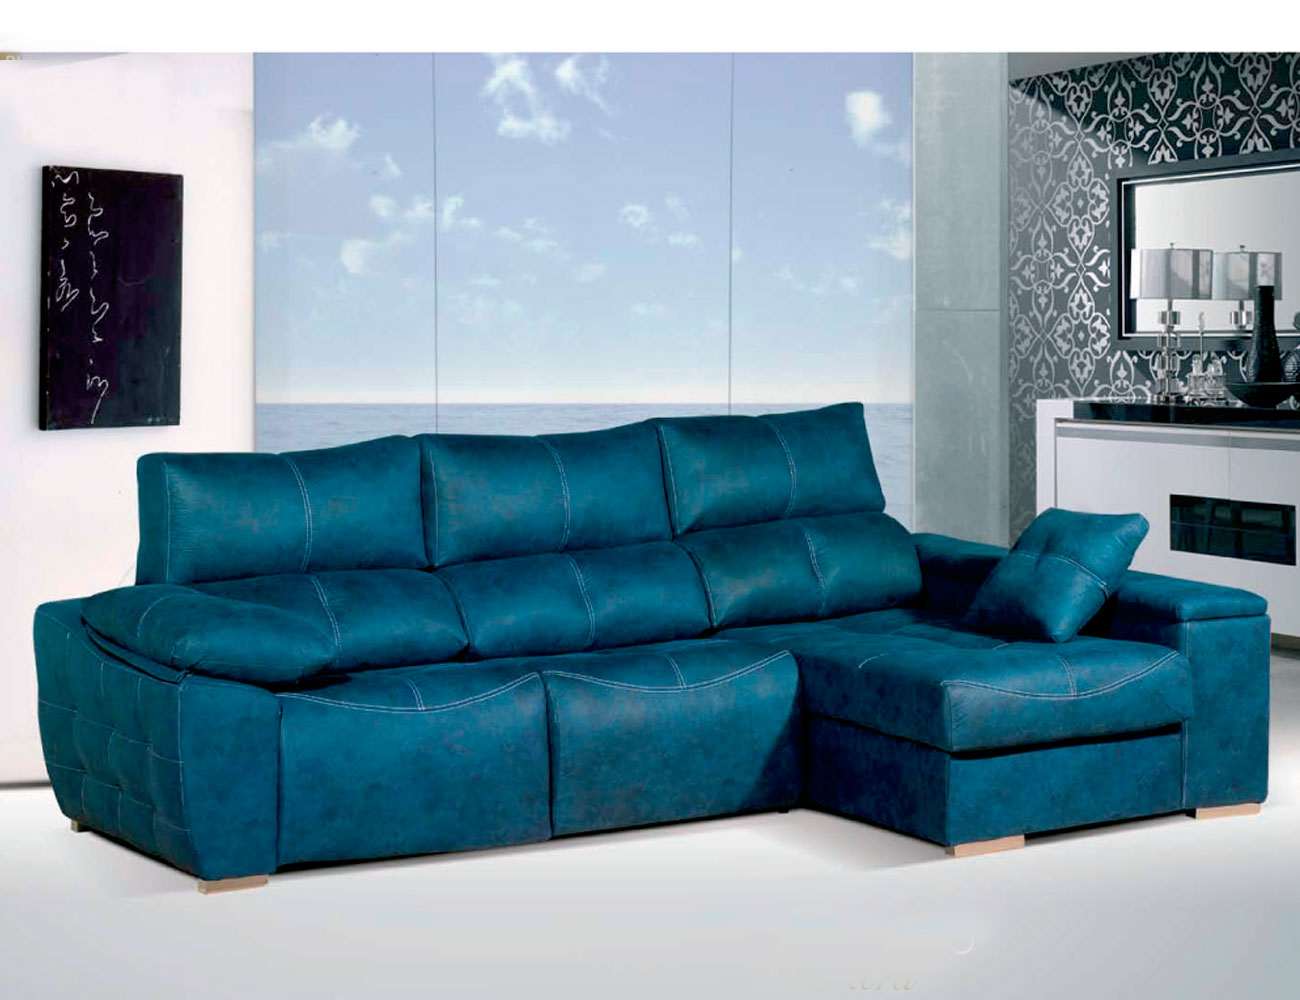 Sofa chaiselongue relax 2 motores anti manchas turquesa18